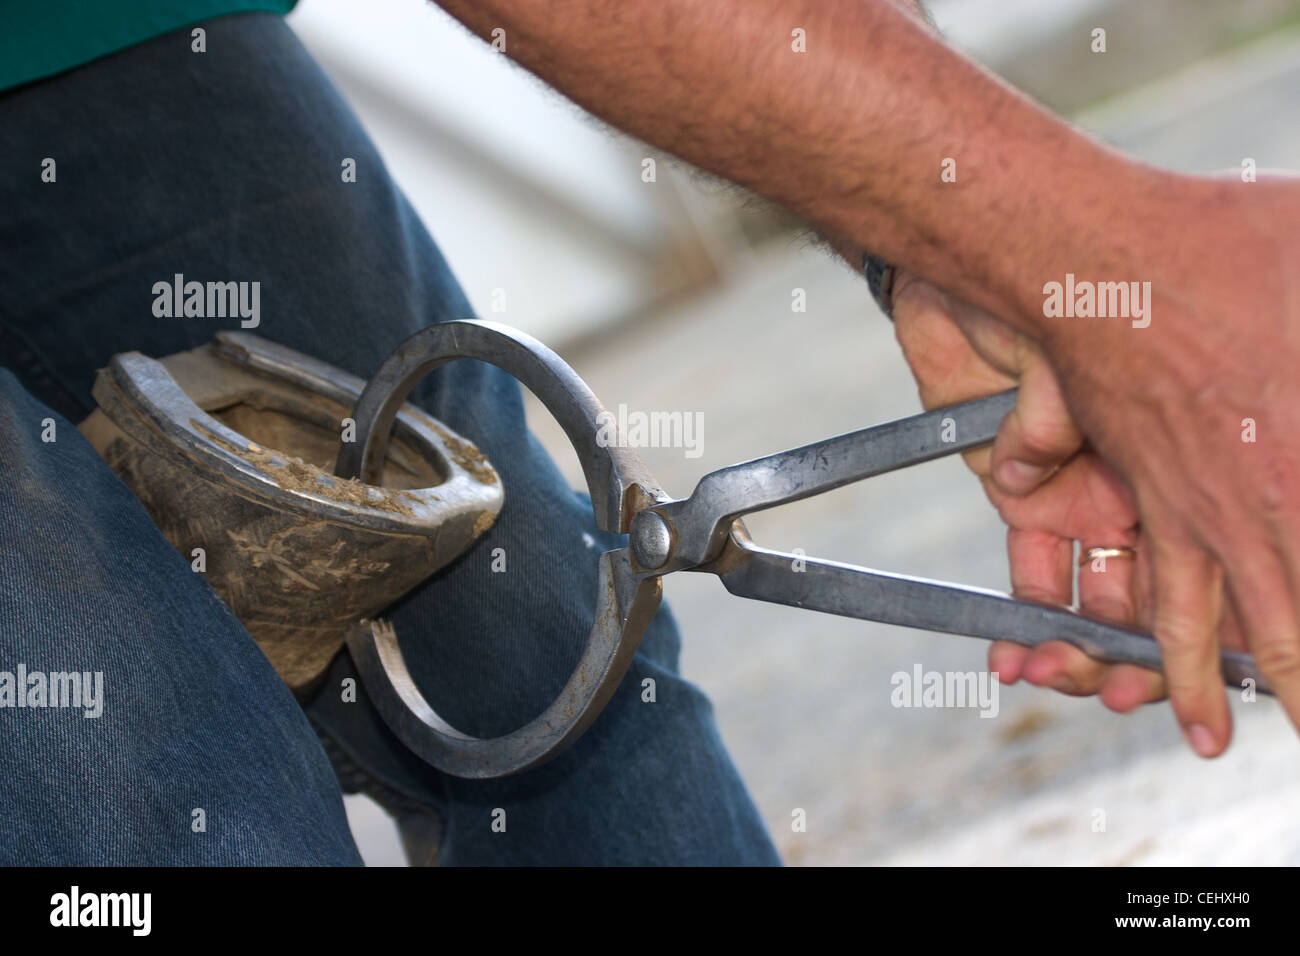 Detail of veterinary procedure of testing a horse's hoof for soreness - Stock Image